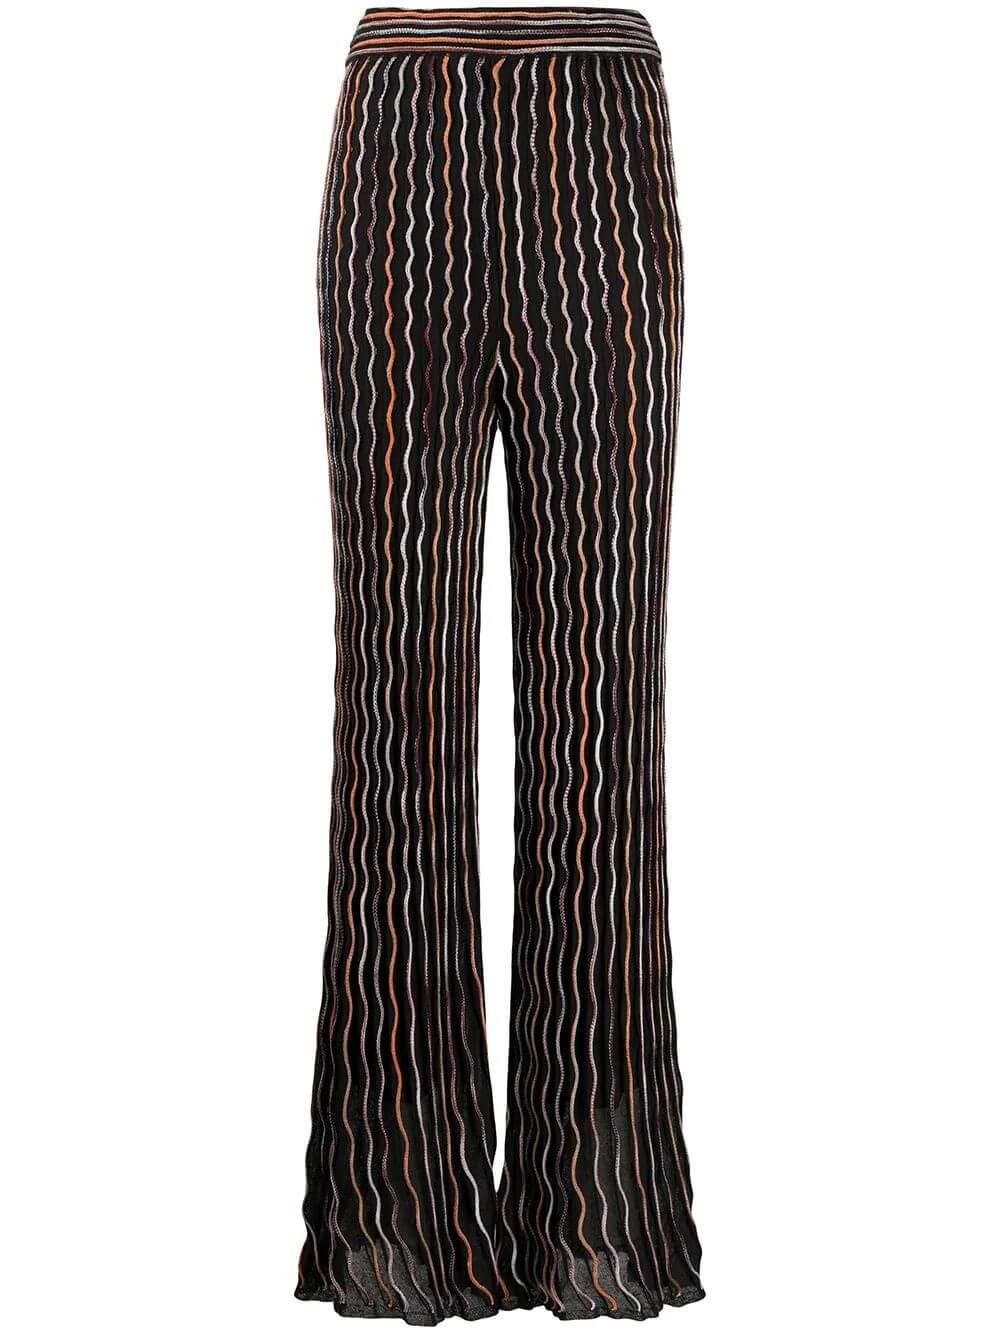 Wave Pattern Knit Pants